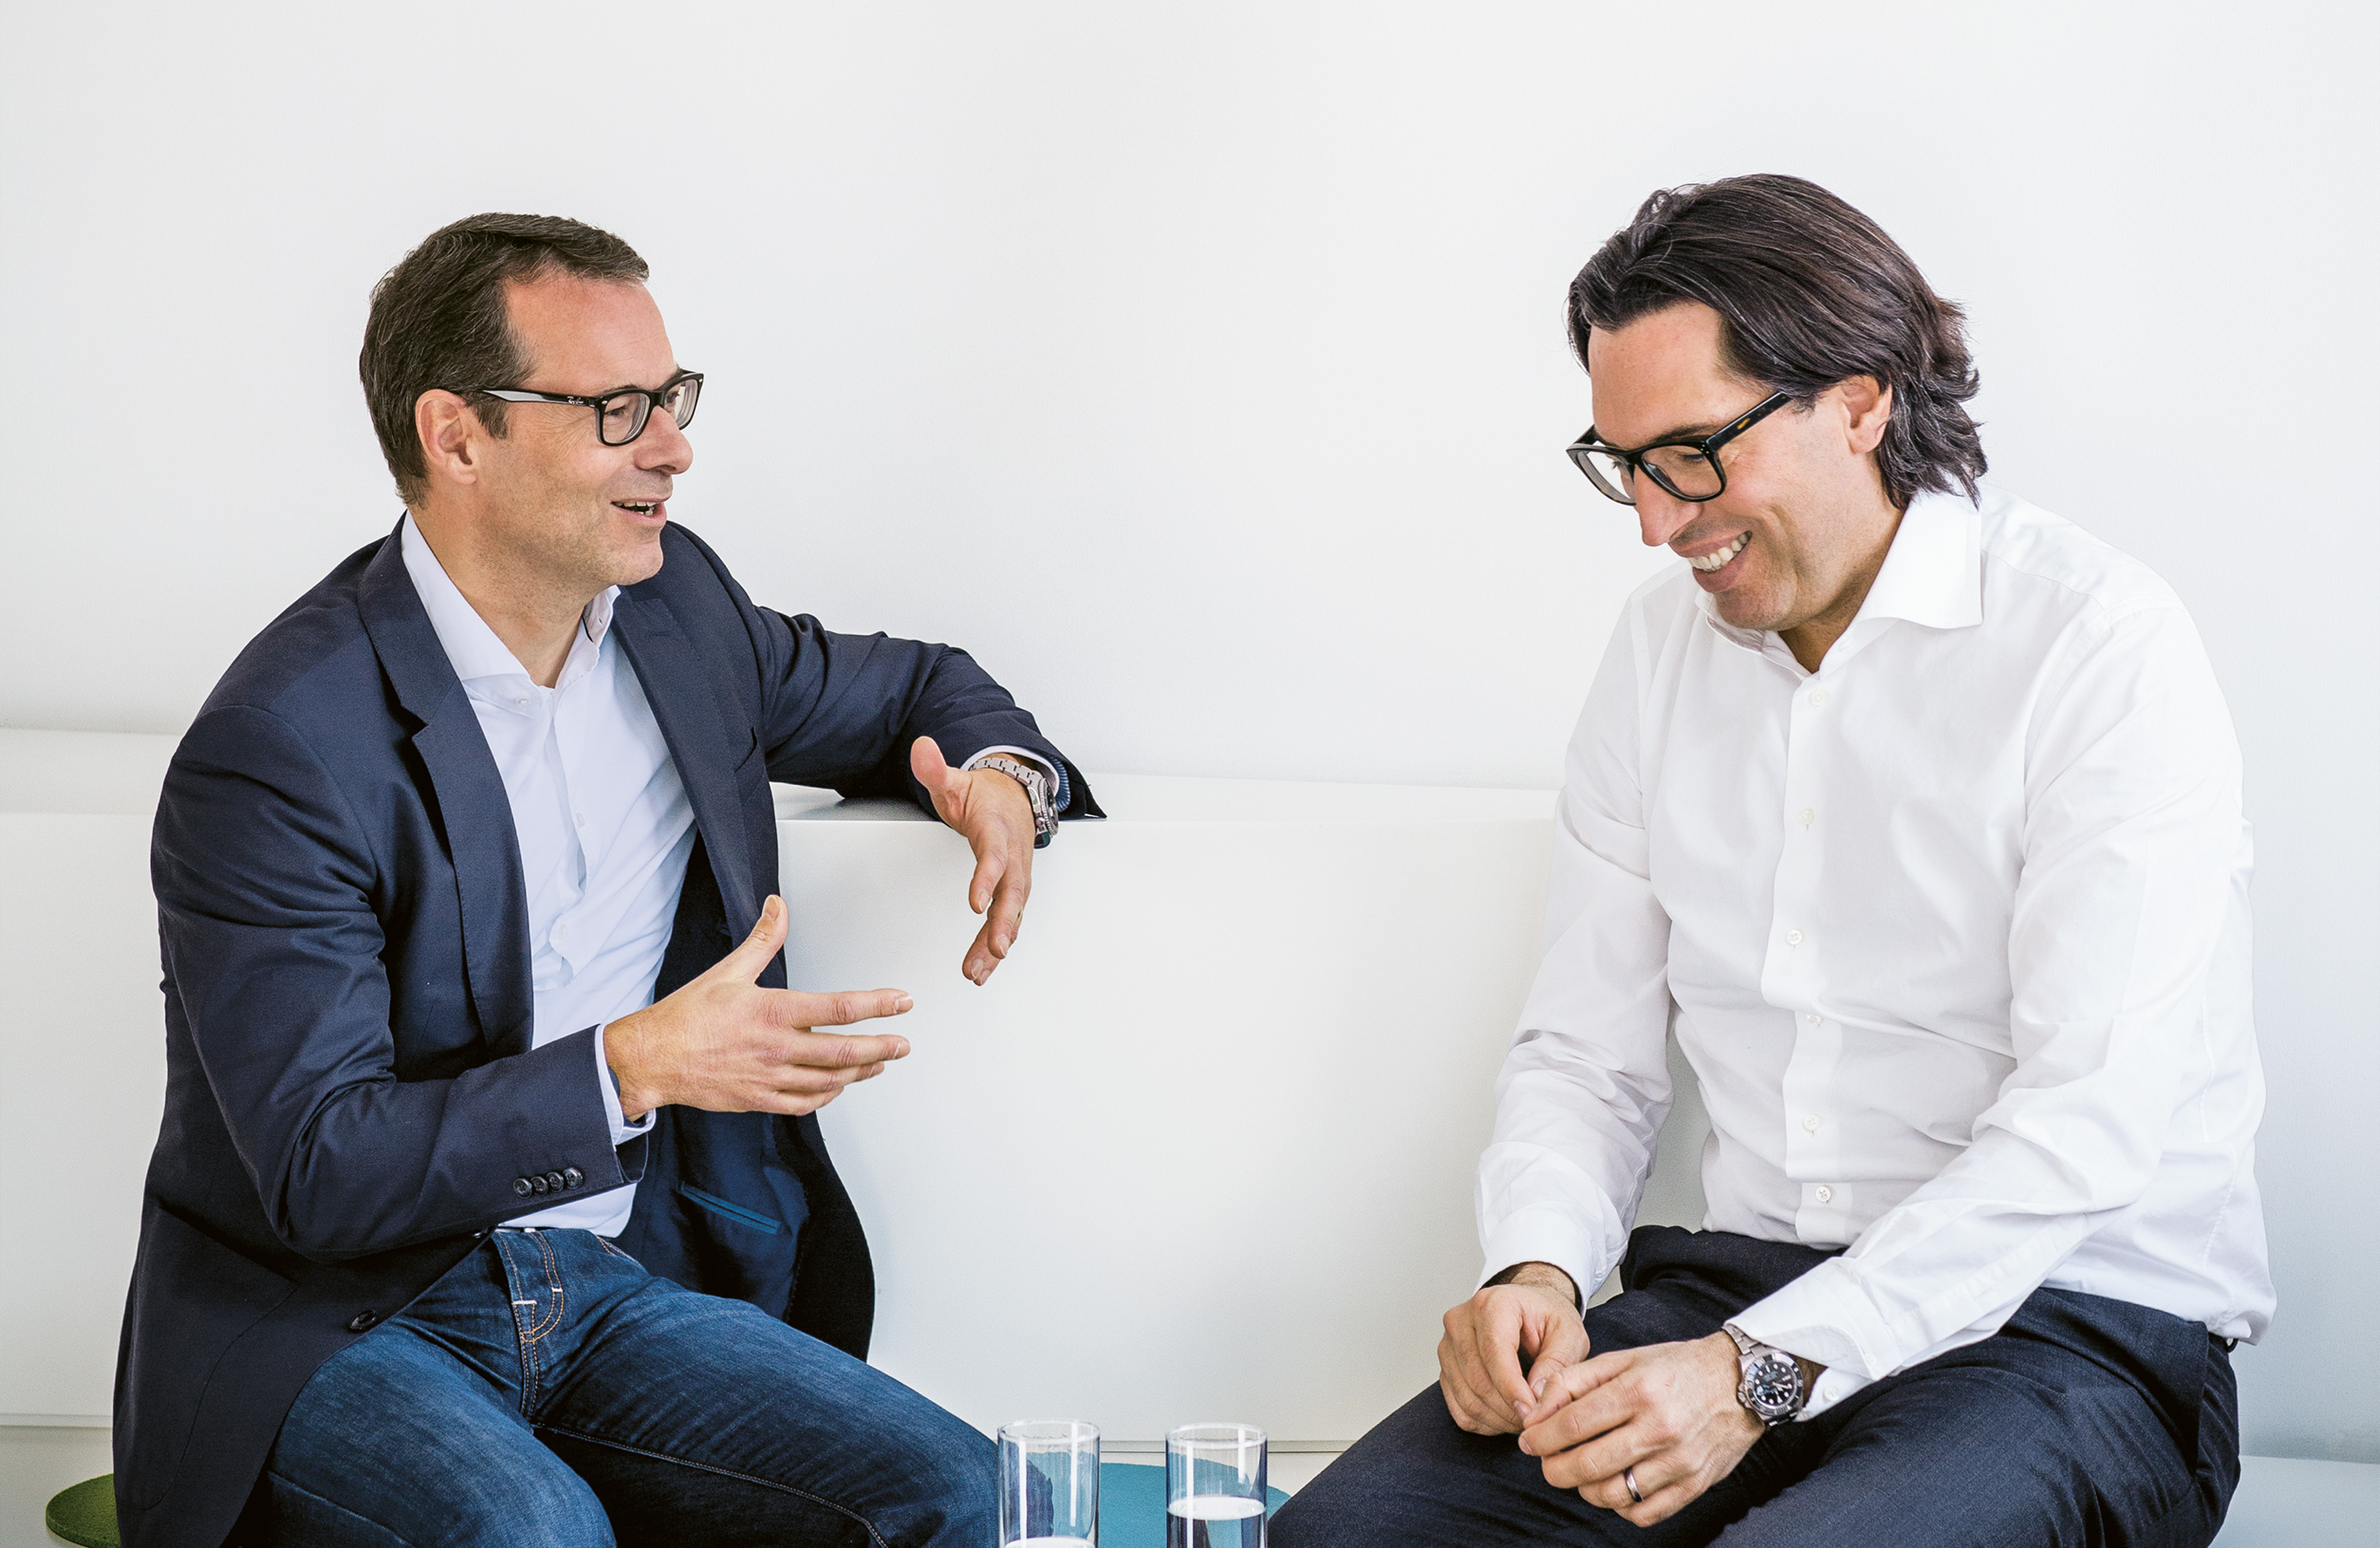 Jörg Trouvain, Managing Director of 7Travel (l), and Dr. Christian Wegner, Member of the Executive Board, Digital & Adjacent, at ProSiebenSat.1 (photo)